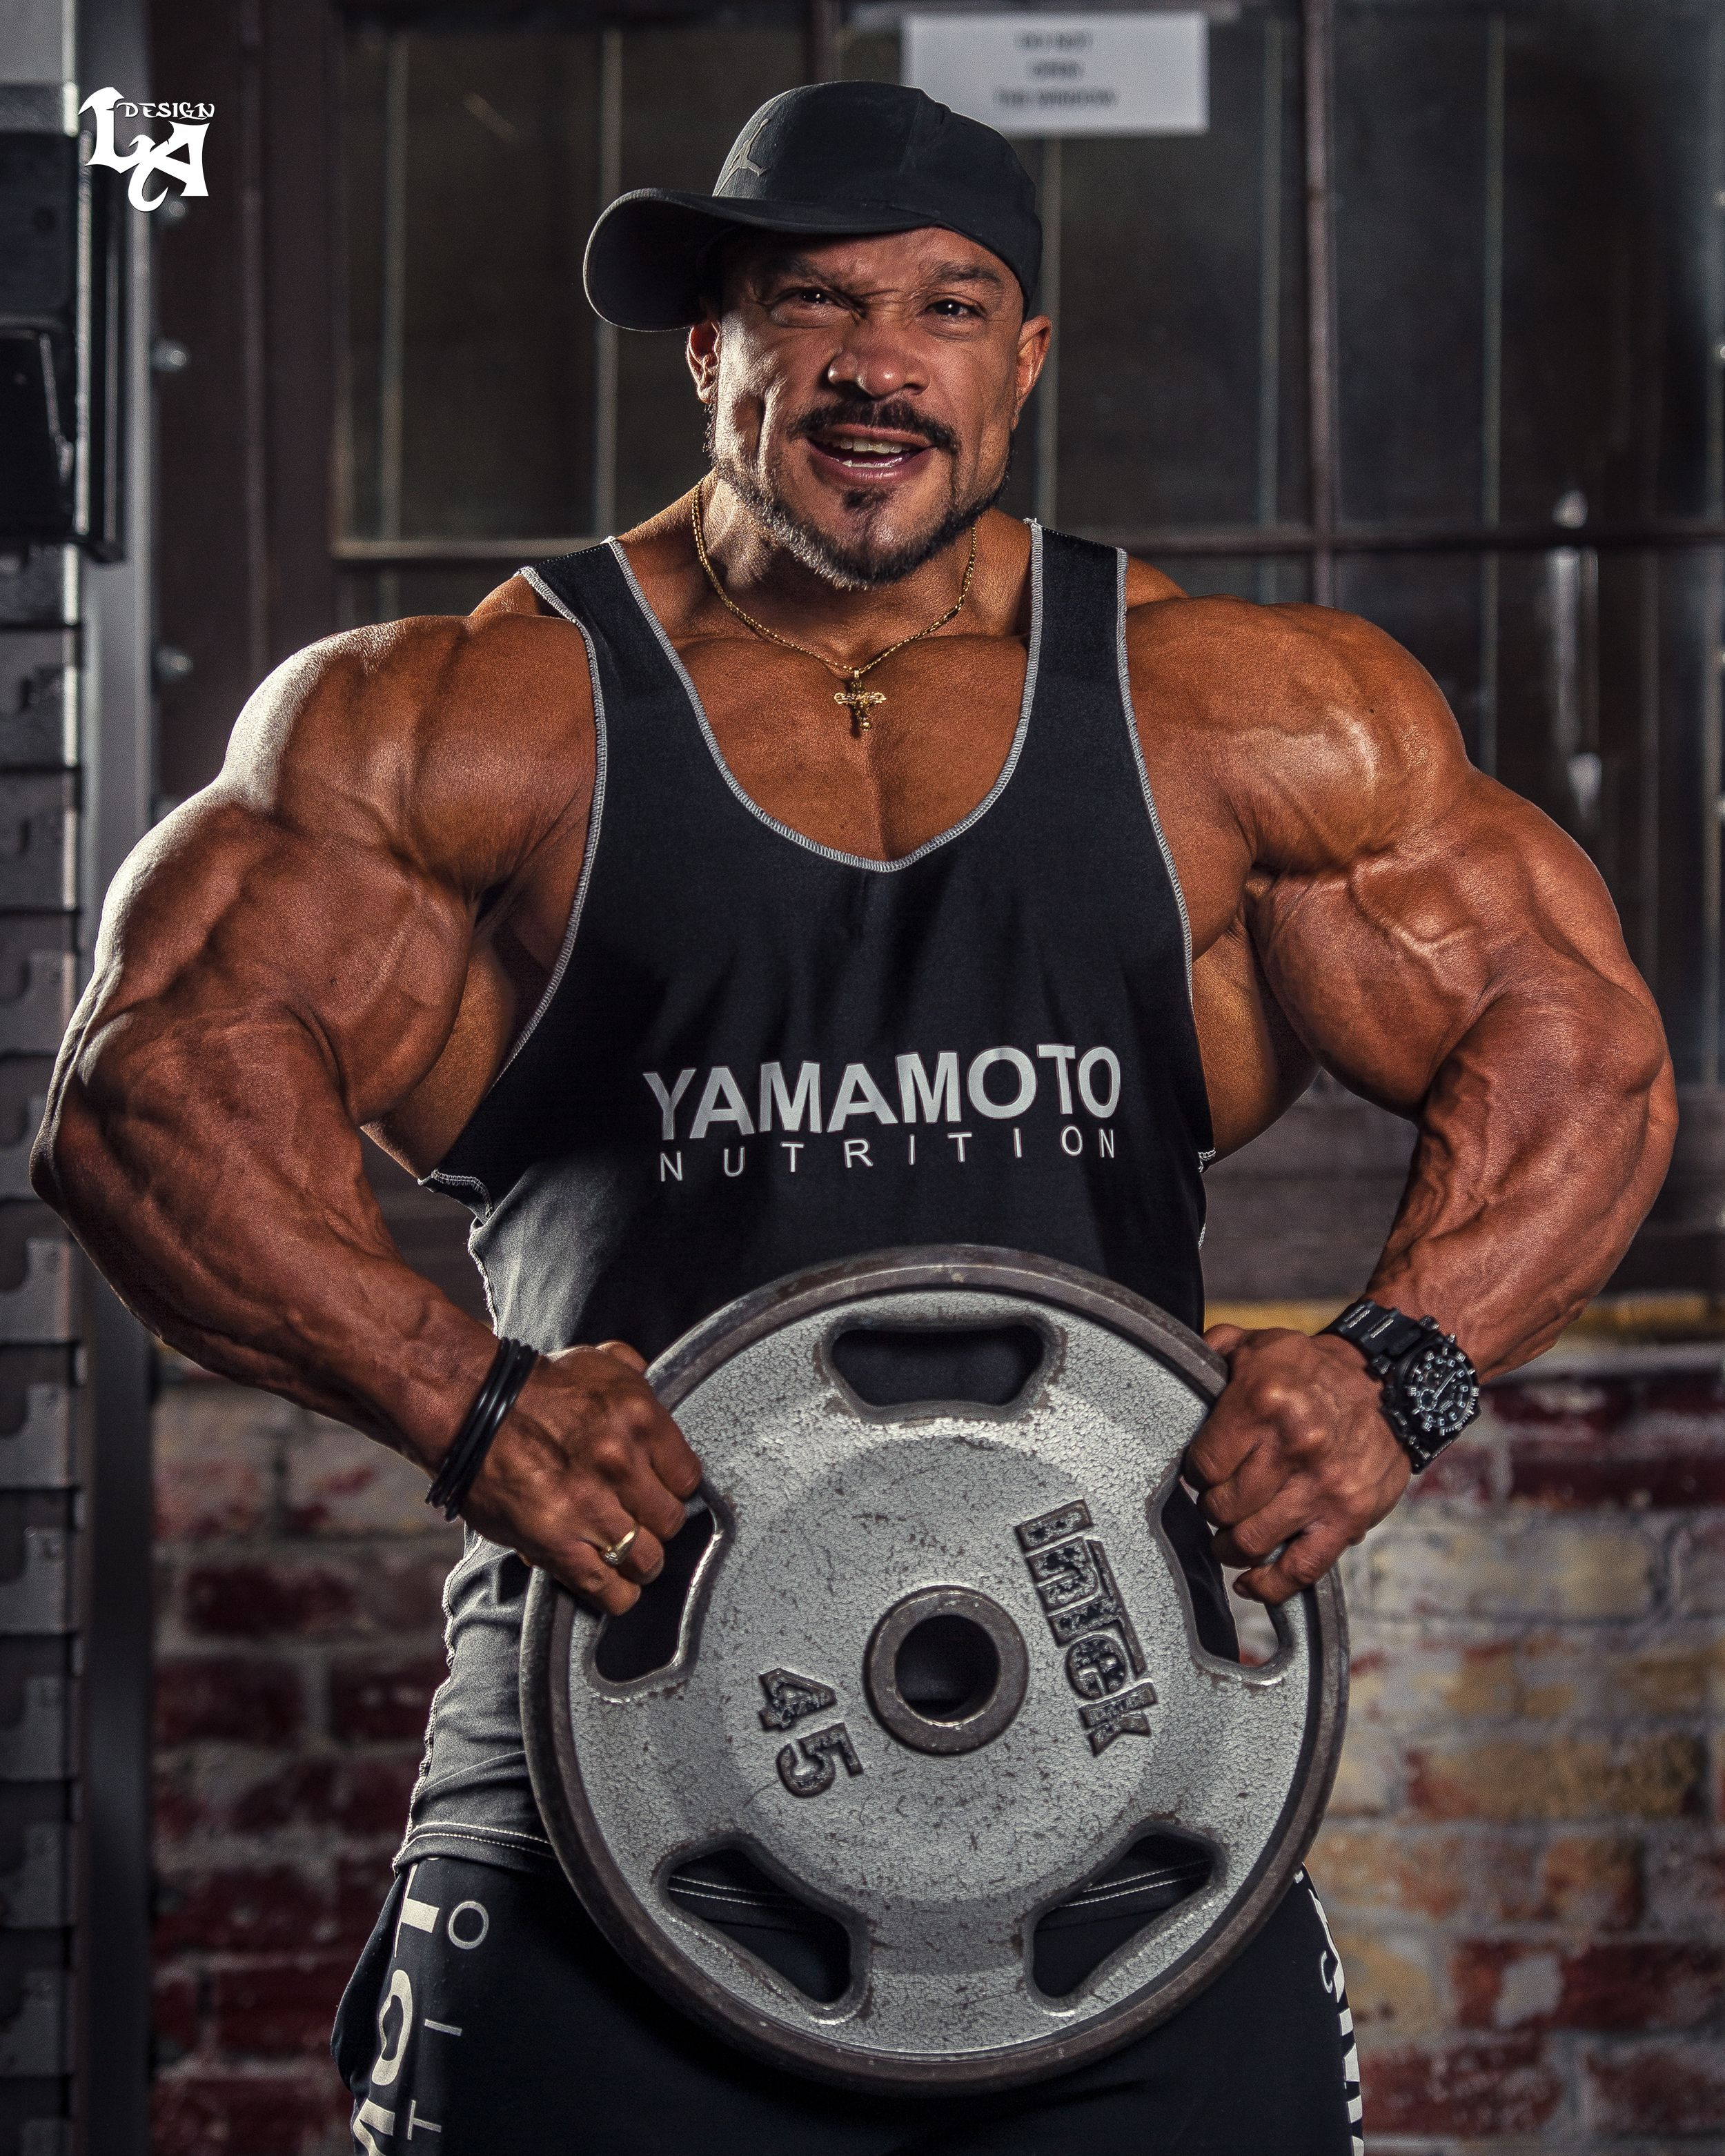 bbe6a3e1 Roelly Winklaar Team #YamamotoNutrition Photoshoot after the Arnold Sports  Festival 2018...THE BEAST! #TeamYamamoto #RoellyWinklaar  www.yamamotonutrition. ...